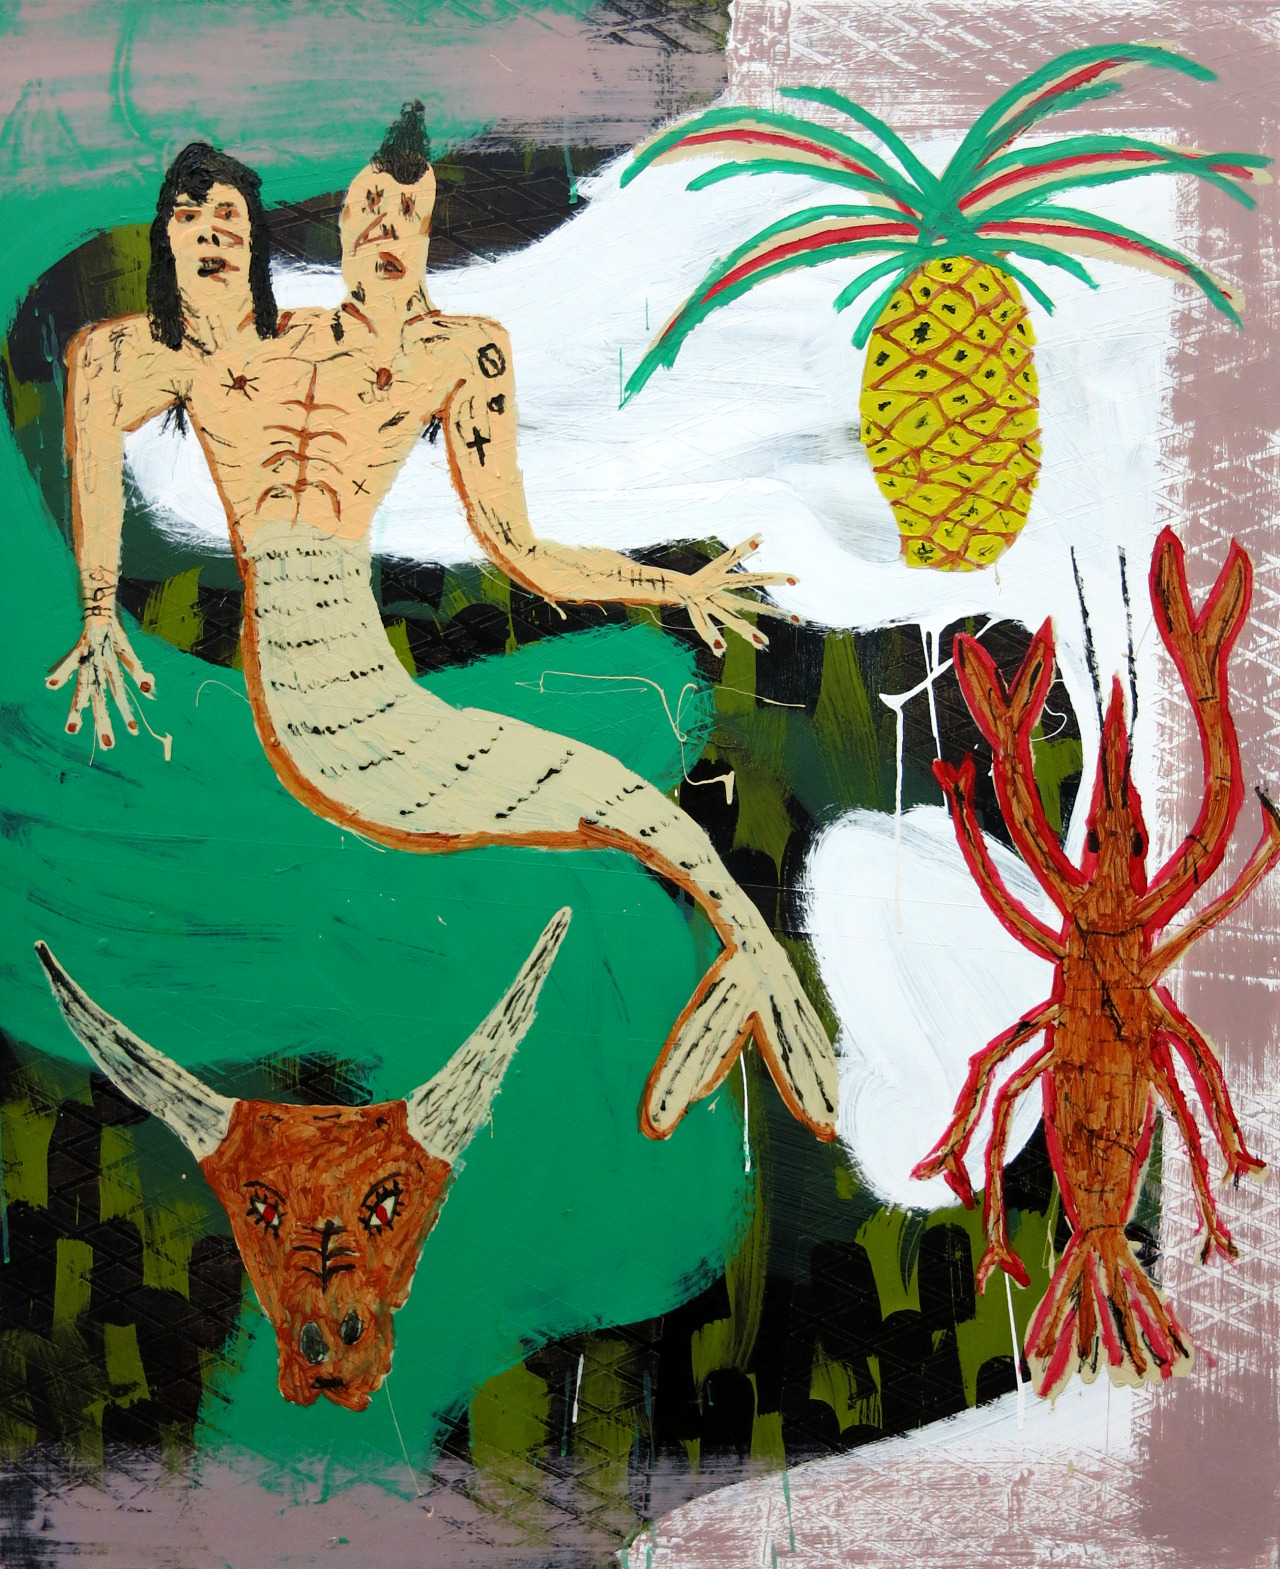 Surf and Turf, acrylic on plywood, 48x40, 2015